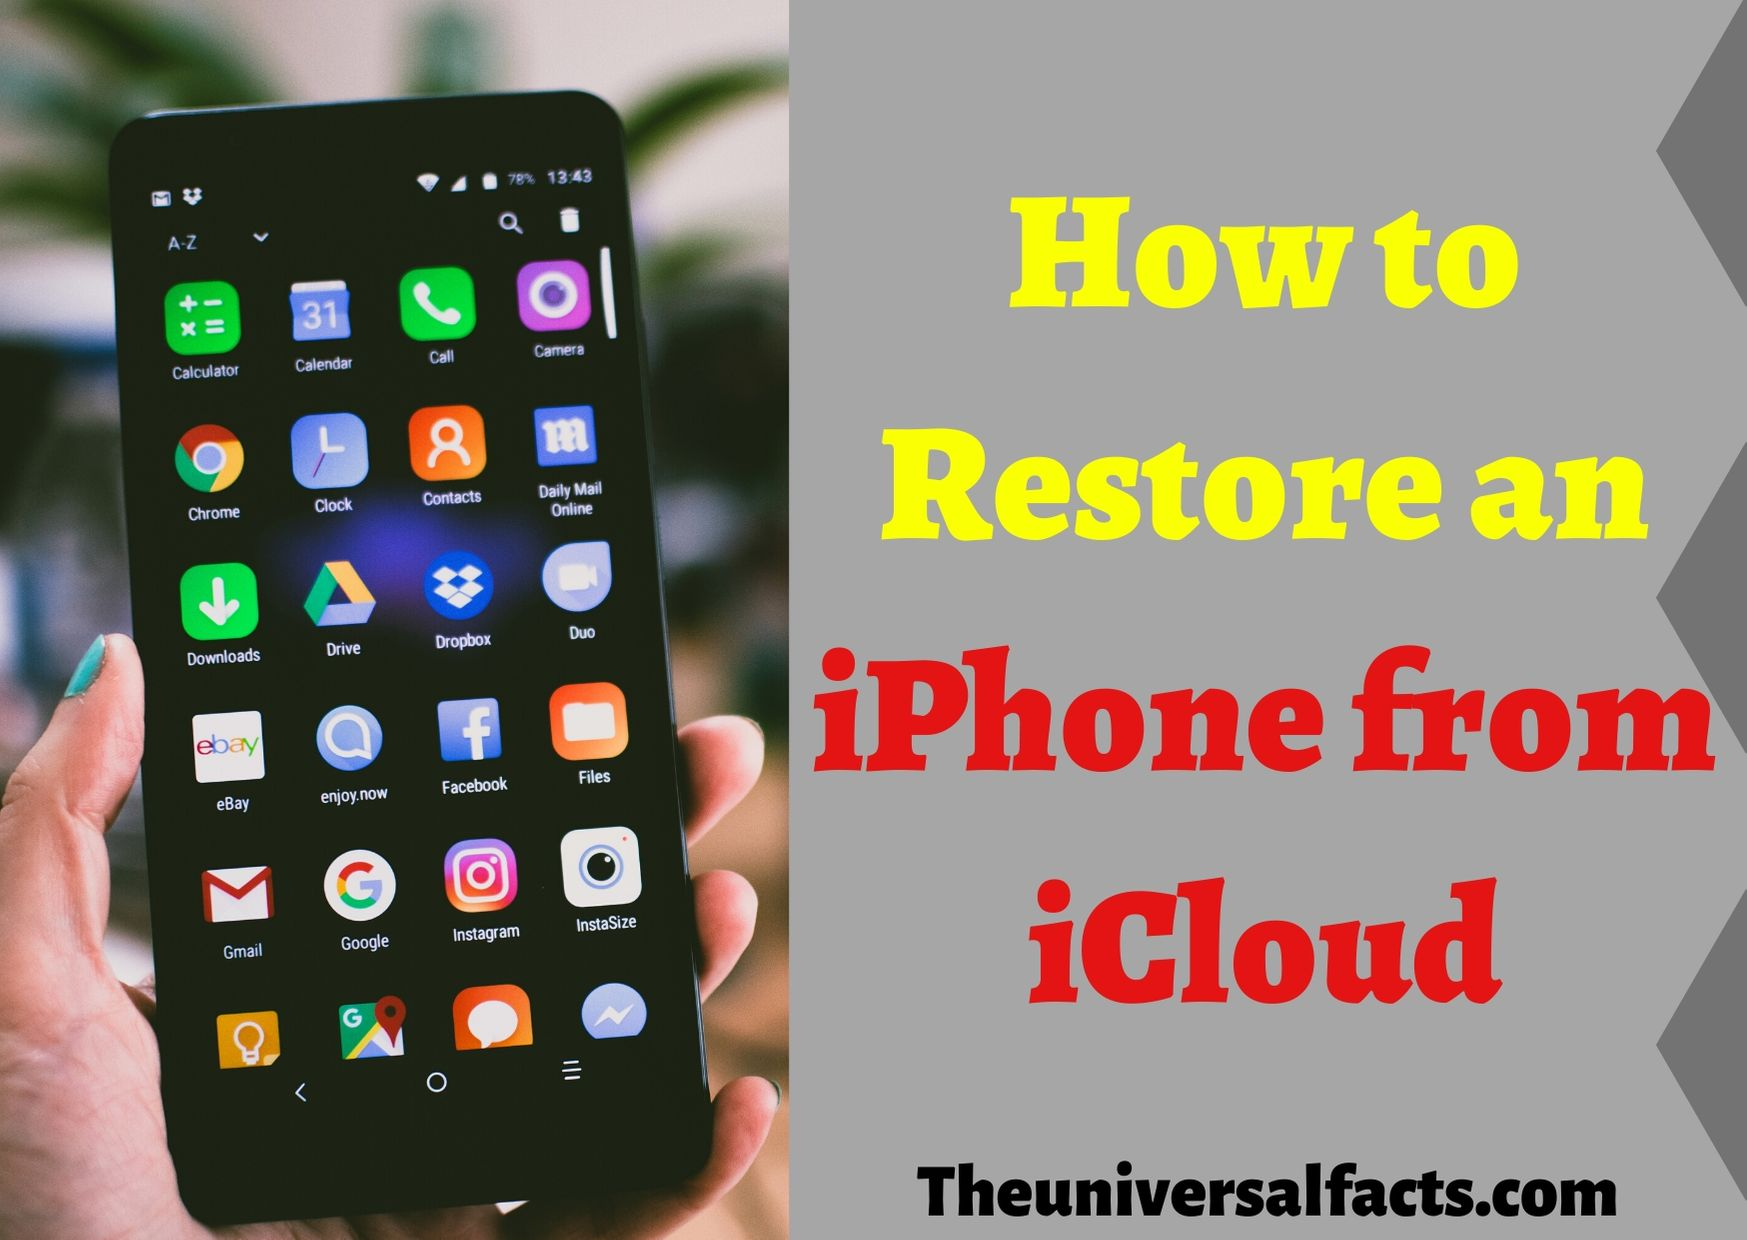 How to Restore an iPhone from iCloud